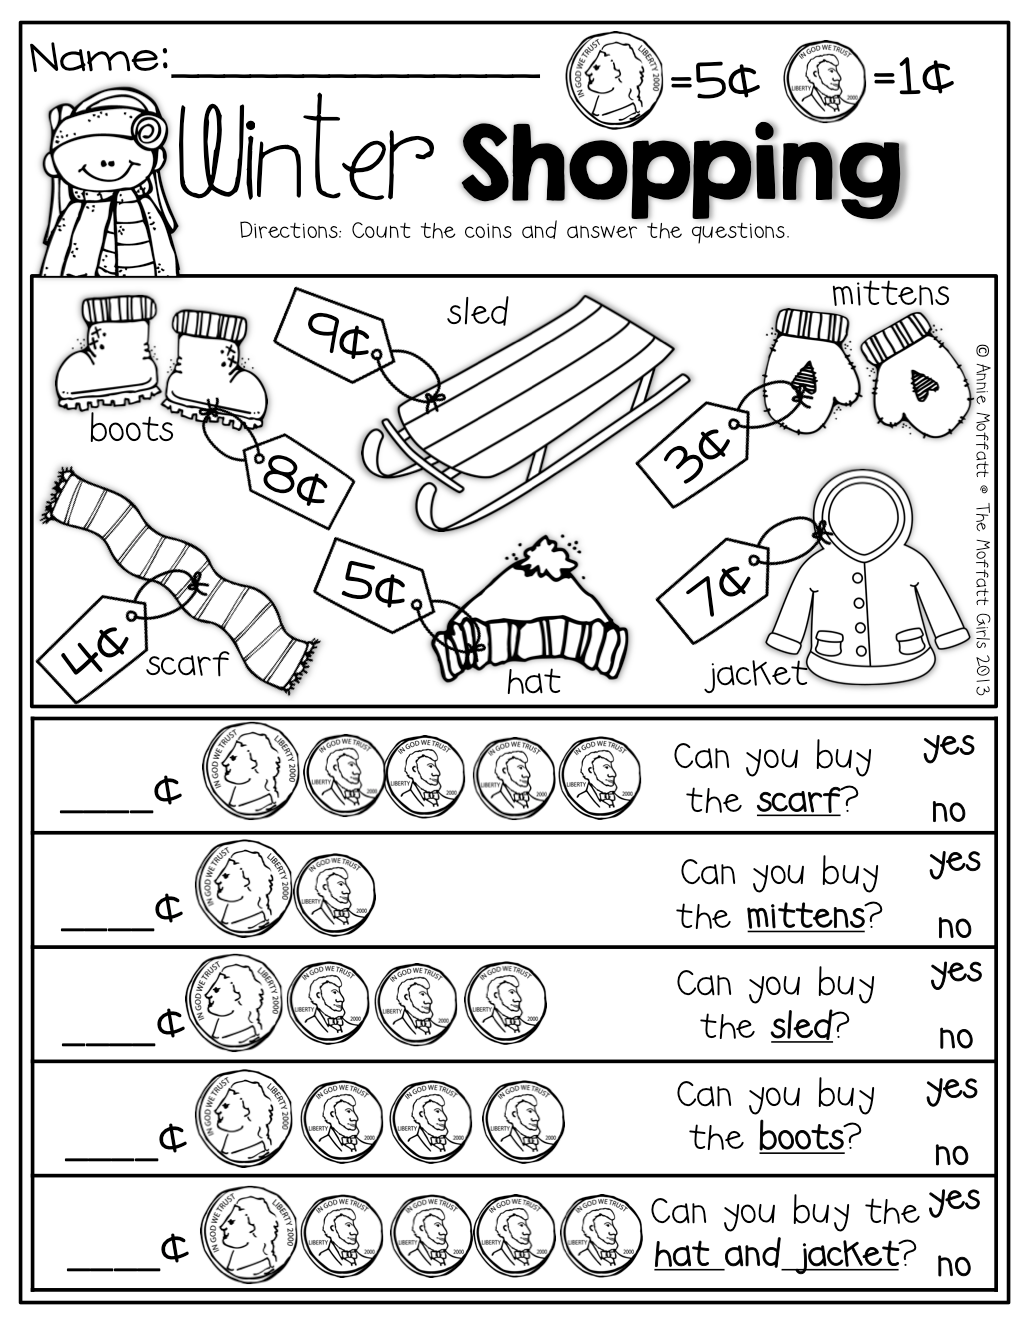 Winter Shopping With Nickels And Pennies Prefect For